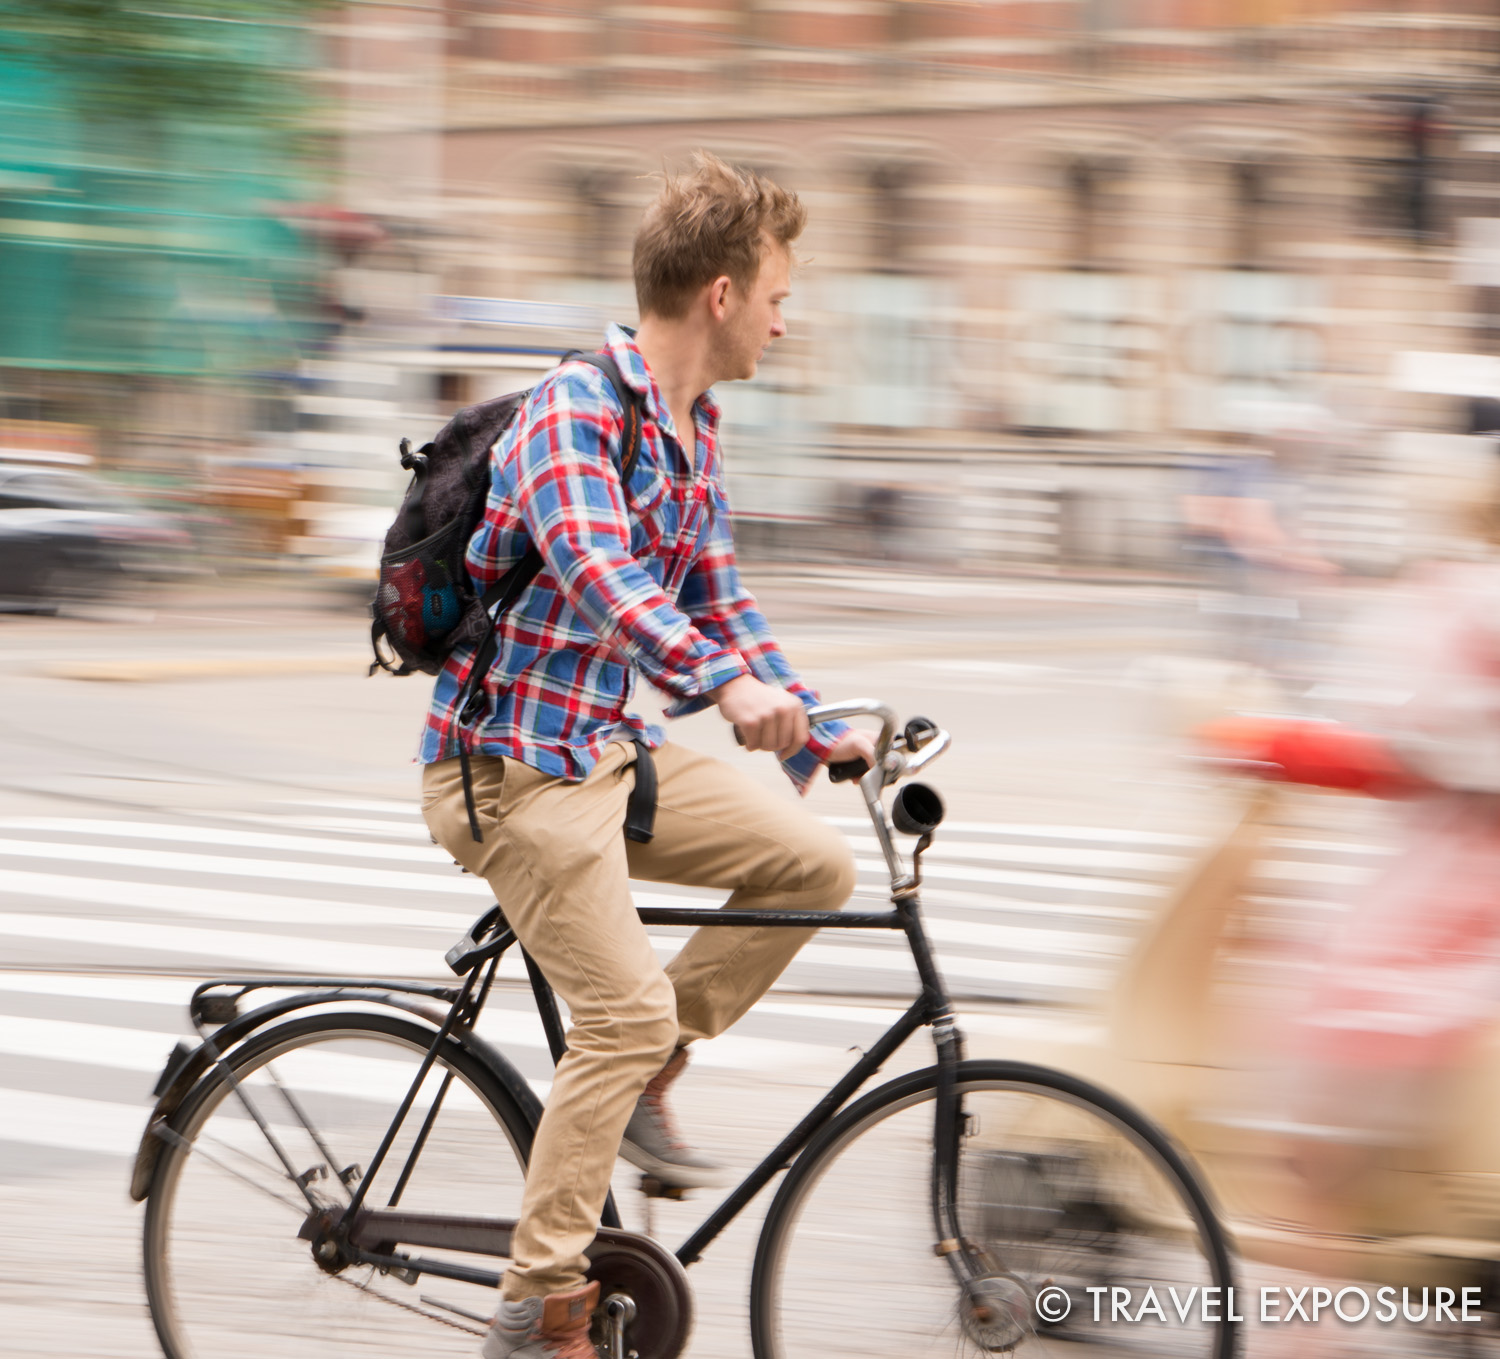 It seems cyclists have the right of way – whizzing every which way around you.There are bike paths everywhere – even special streetlights for cyclists.